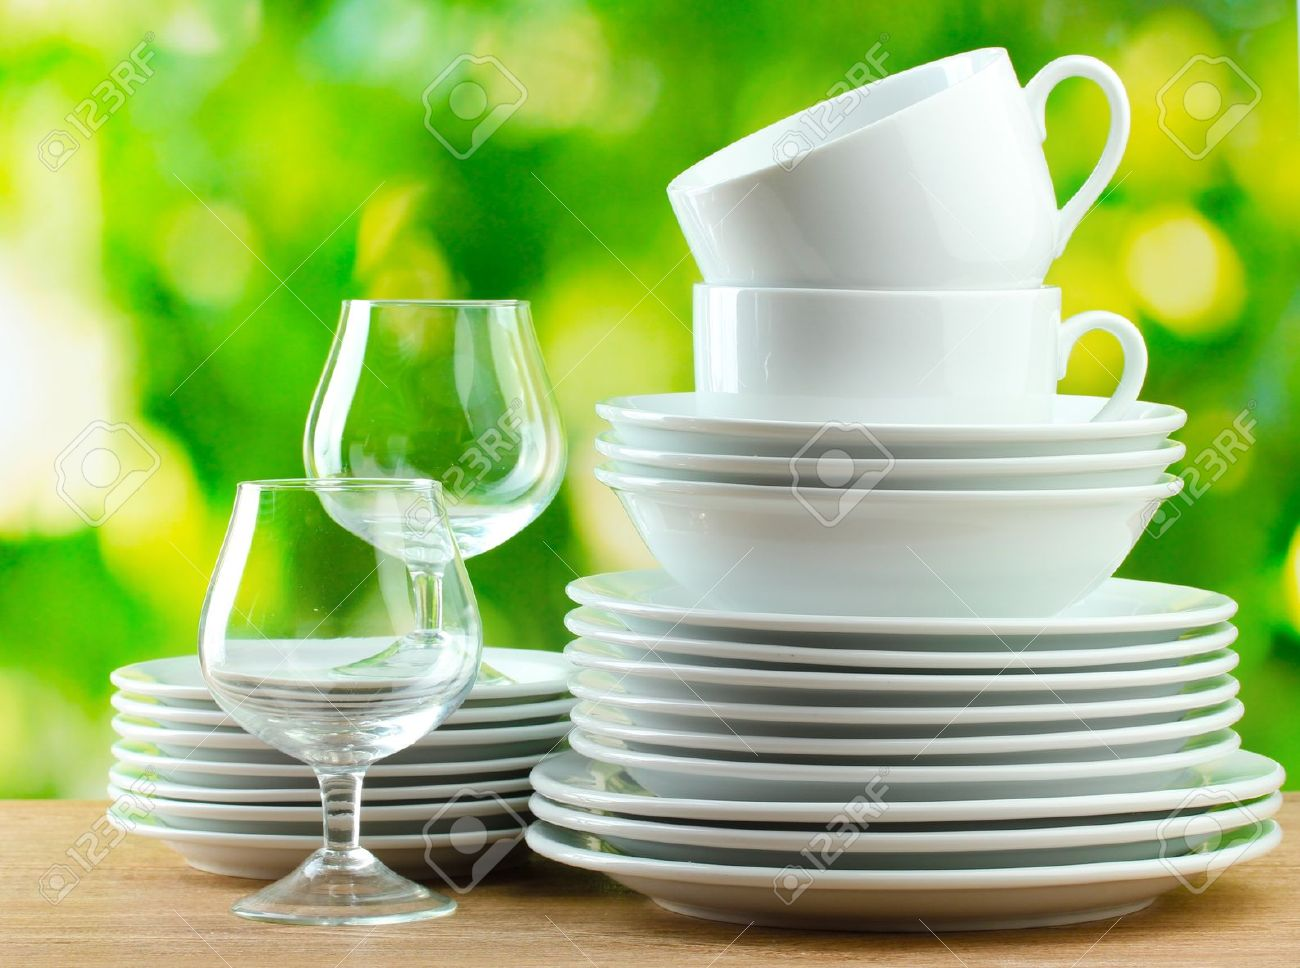 clean dishes on wooden table on green background stock photo